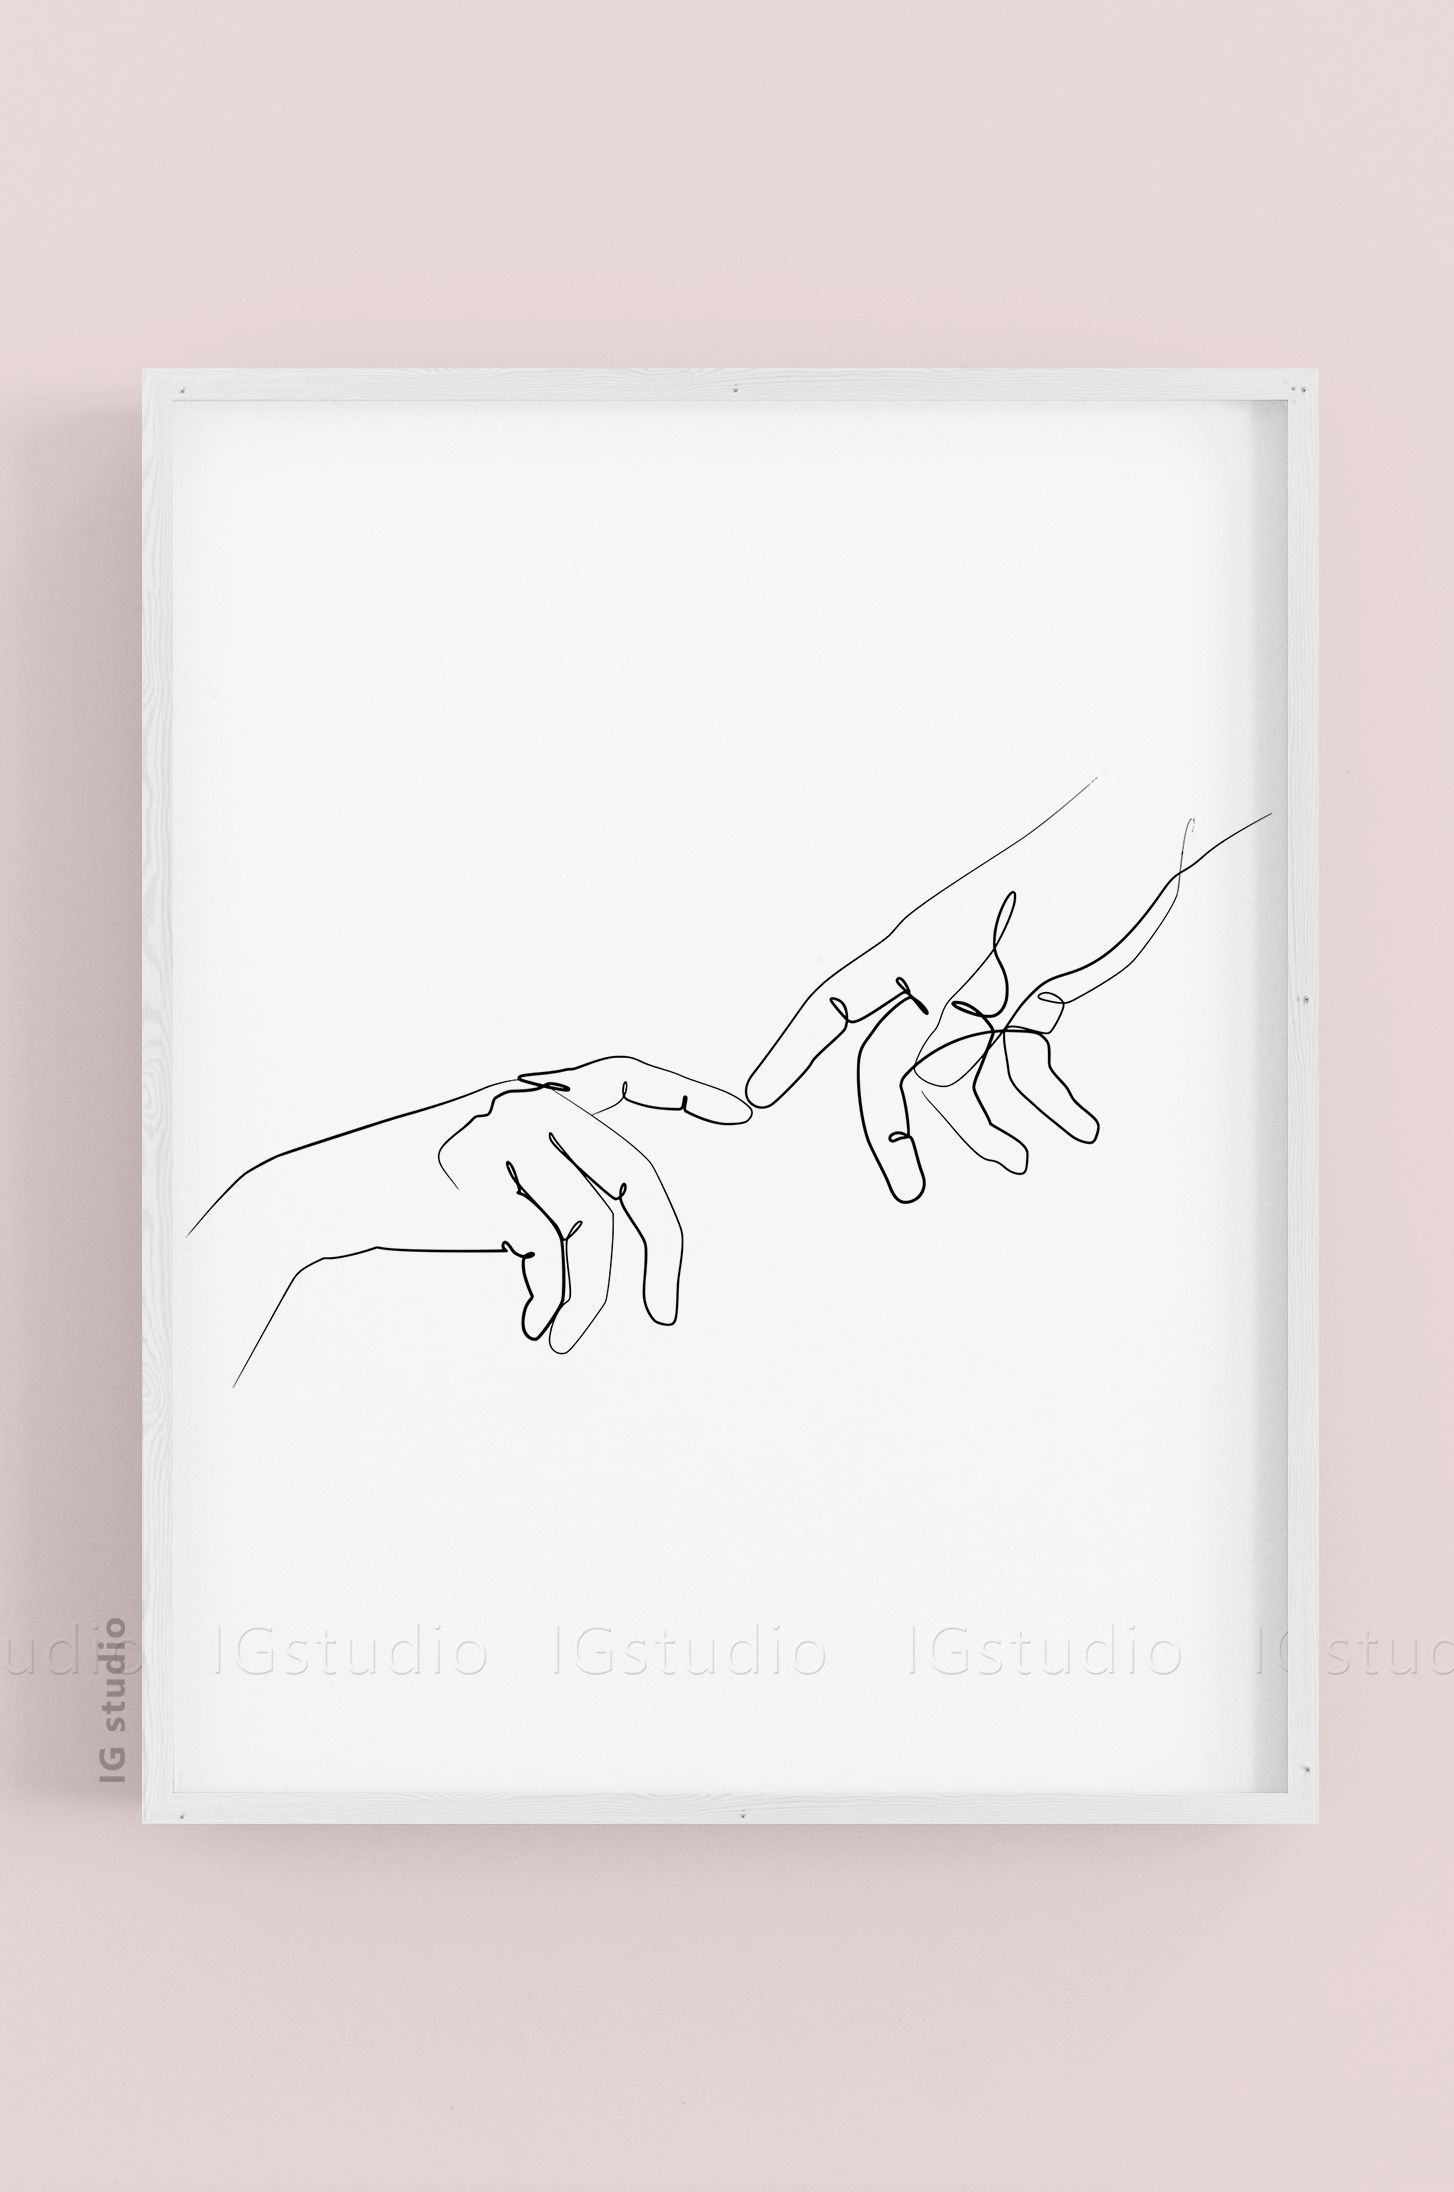 Two Hands Print Bedroom PrintLine Art Couples PrintHands Line Art Scandi